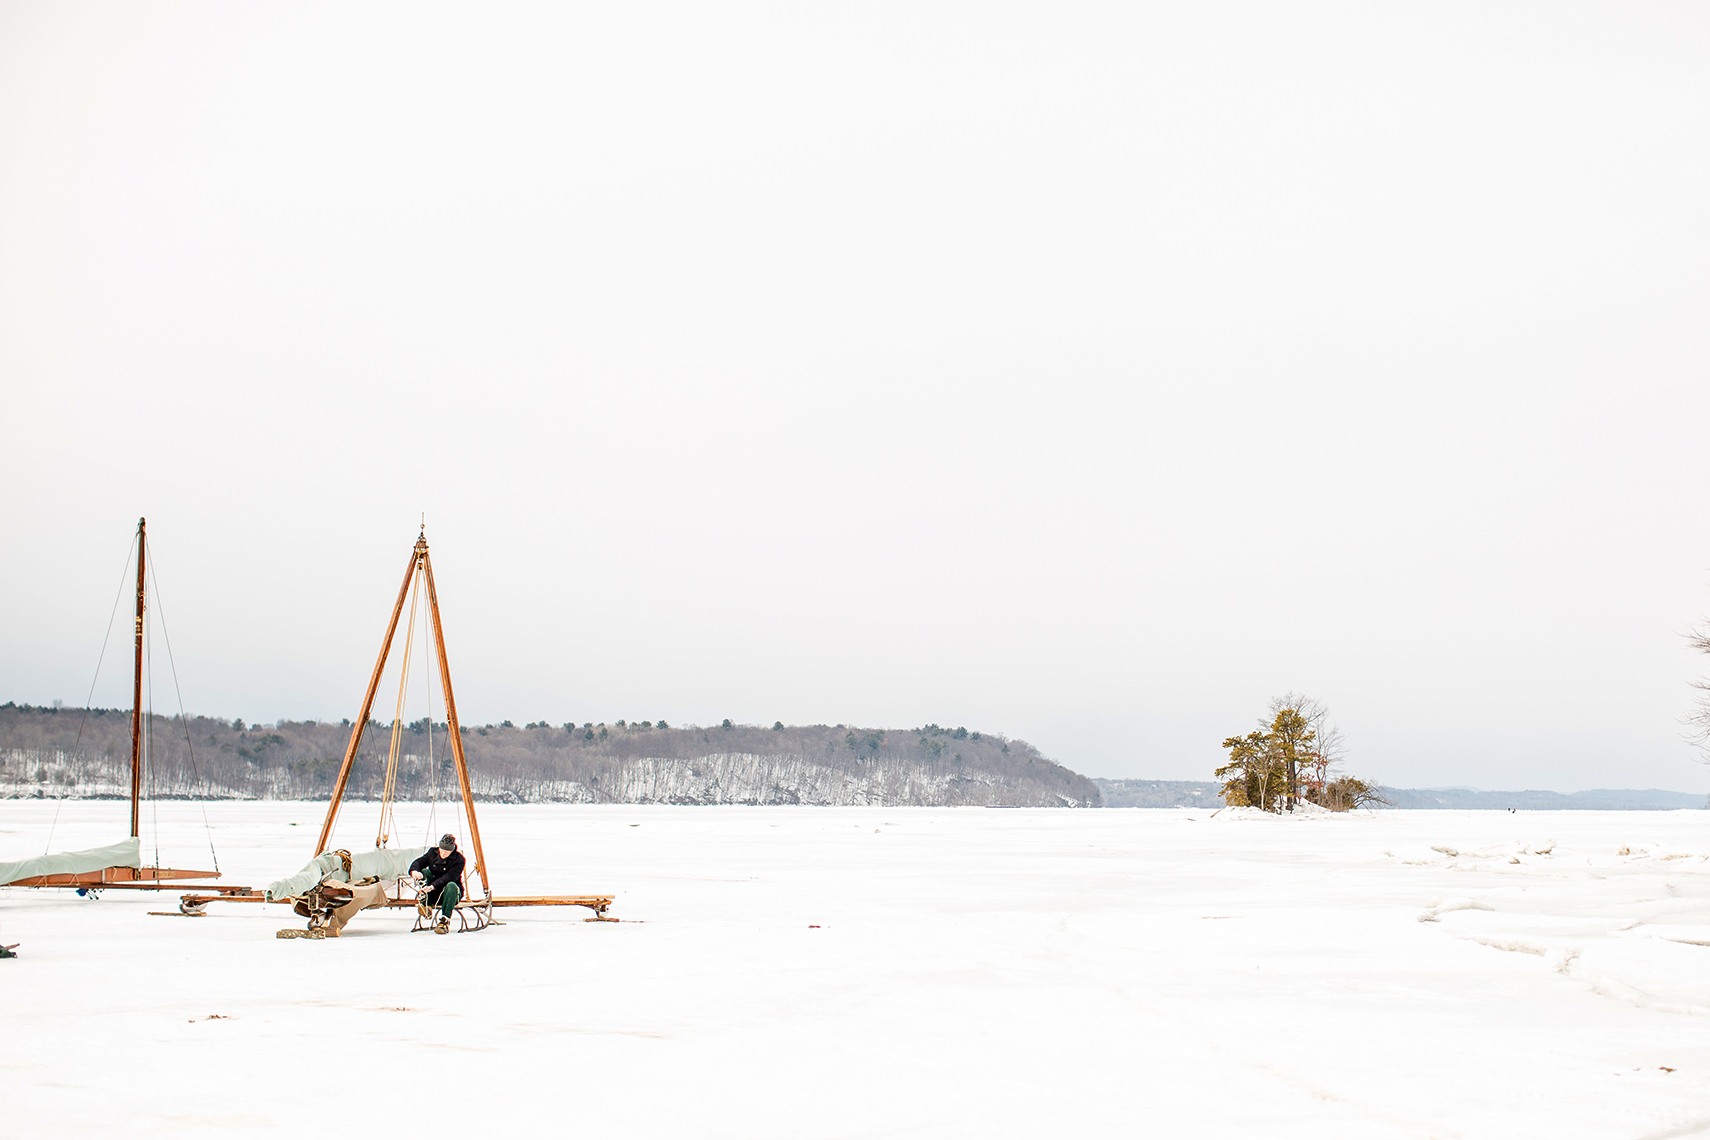 christopher_lane_iceboat_02